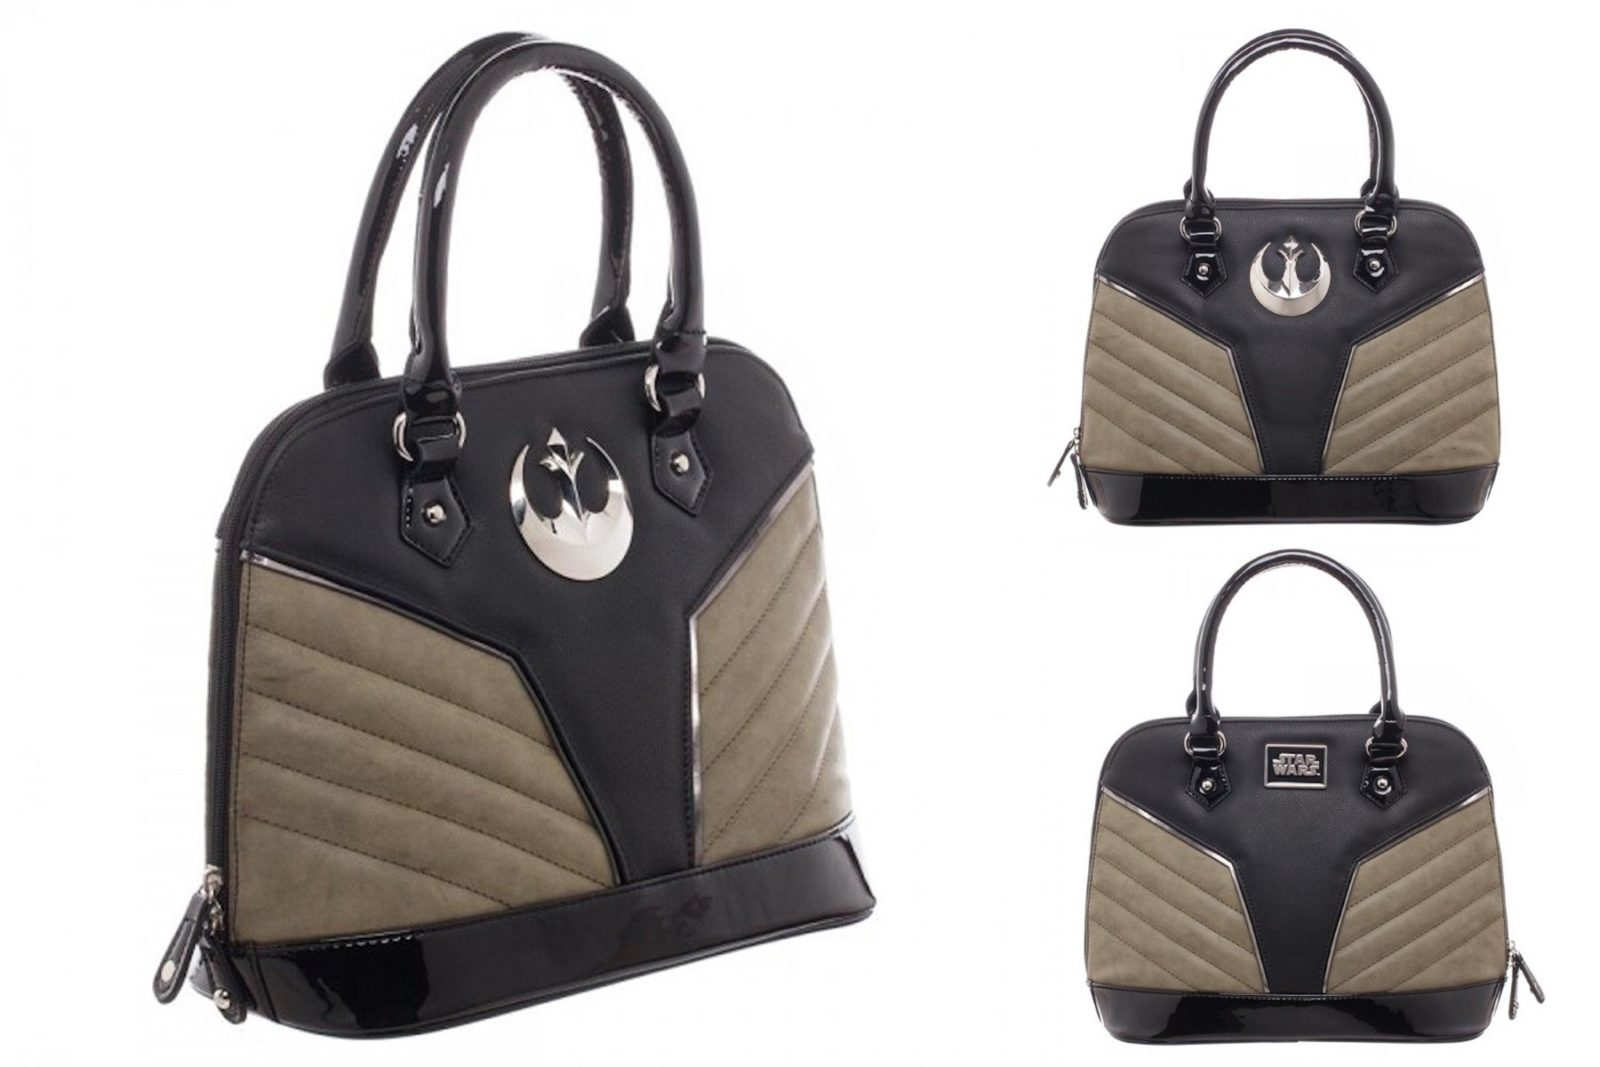 Bioworld x Rogue One Jyn Erso handbag